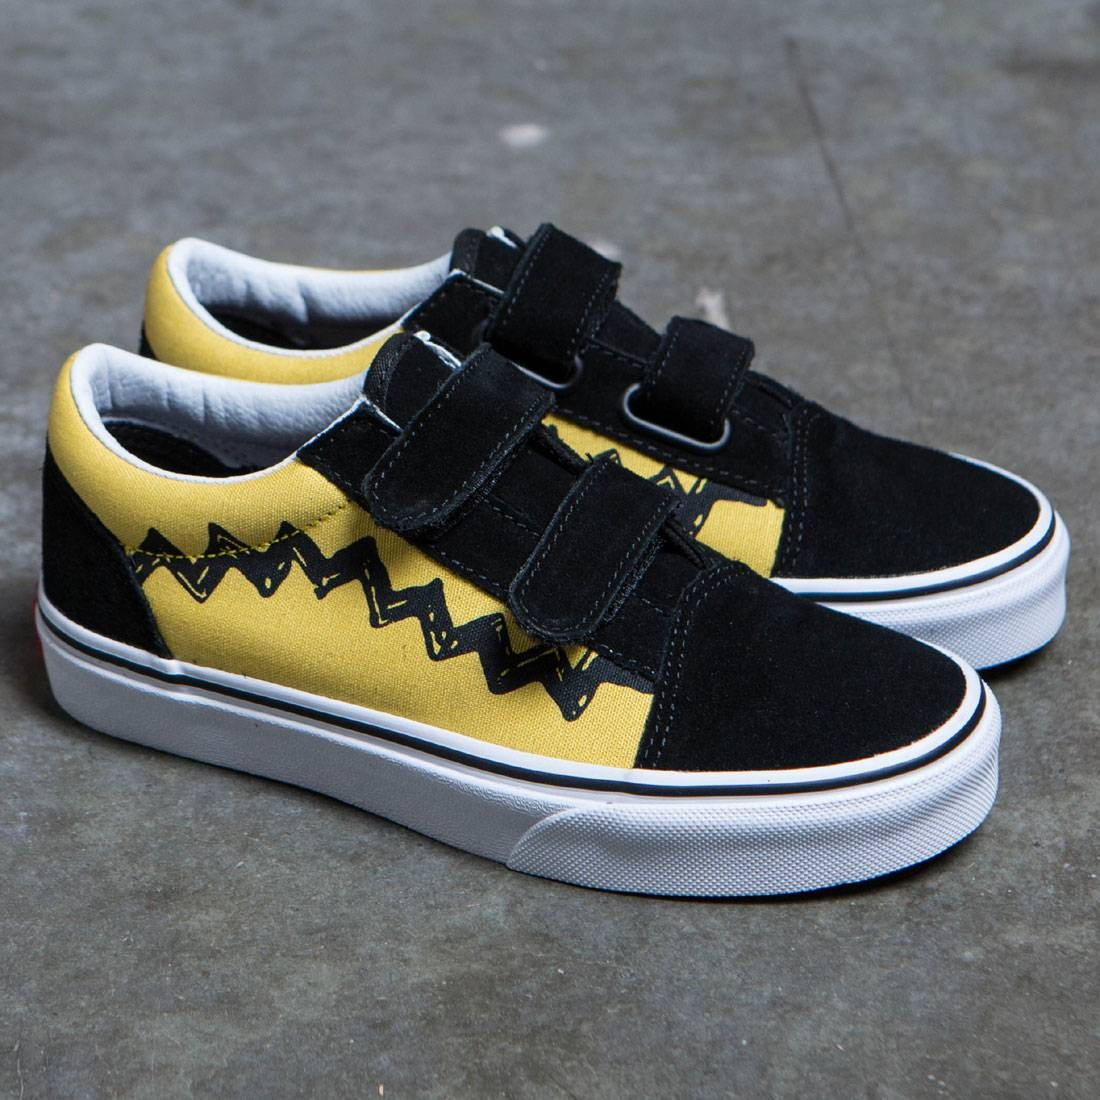 0cfb087af66 Vans x Peanuts Big Kids Old Skool V - Charlie Brown (yellow   black)